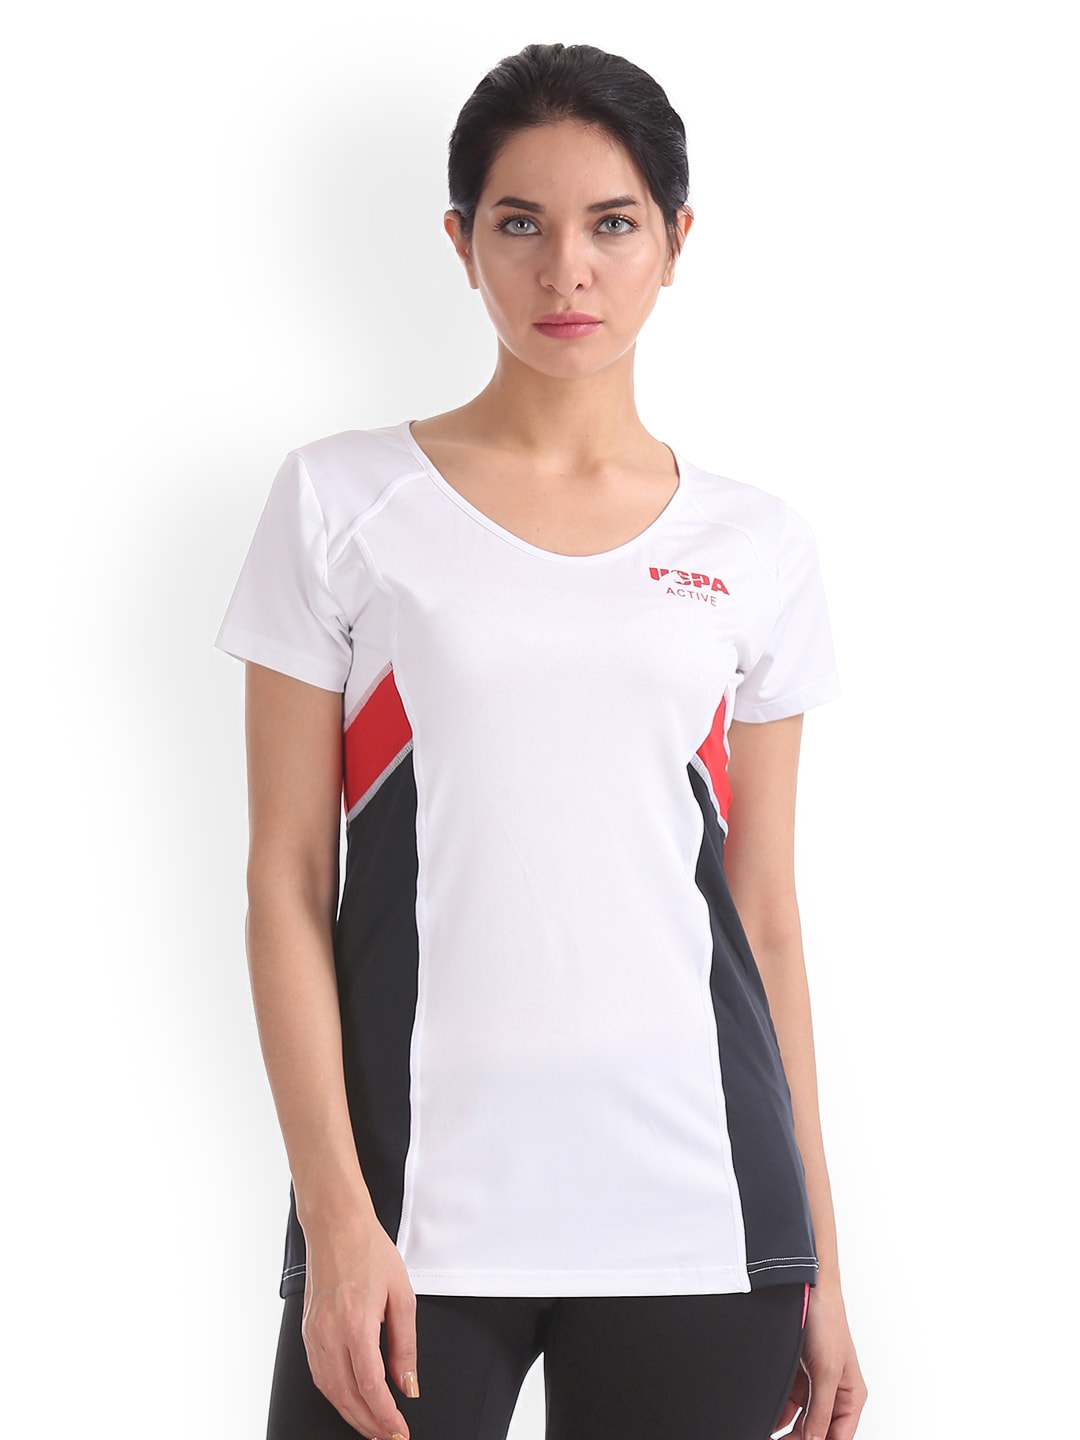 f7f1cbc6a16e Sports Wear For Women - Buy Women Sportswear Online